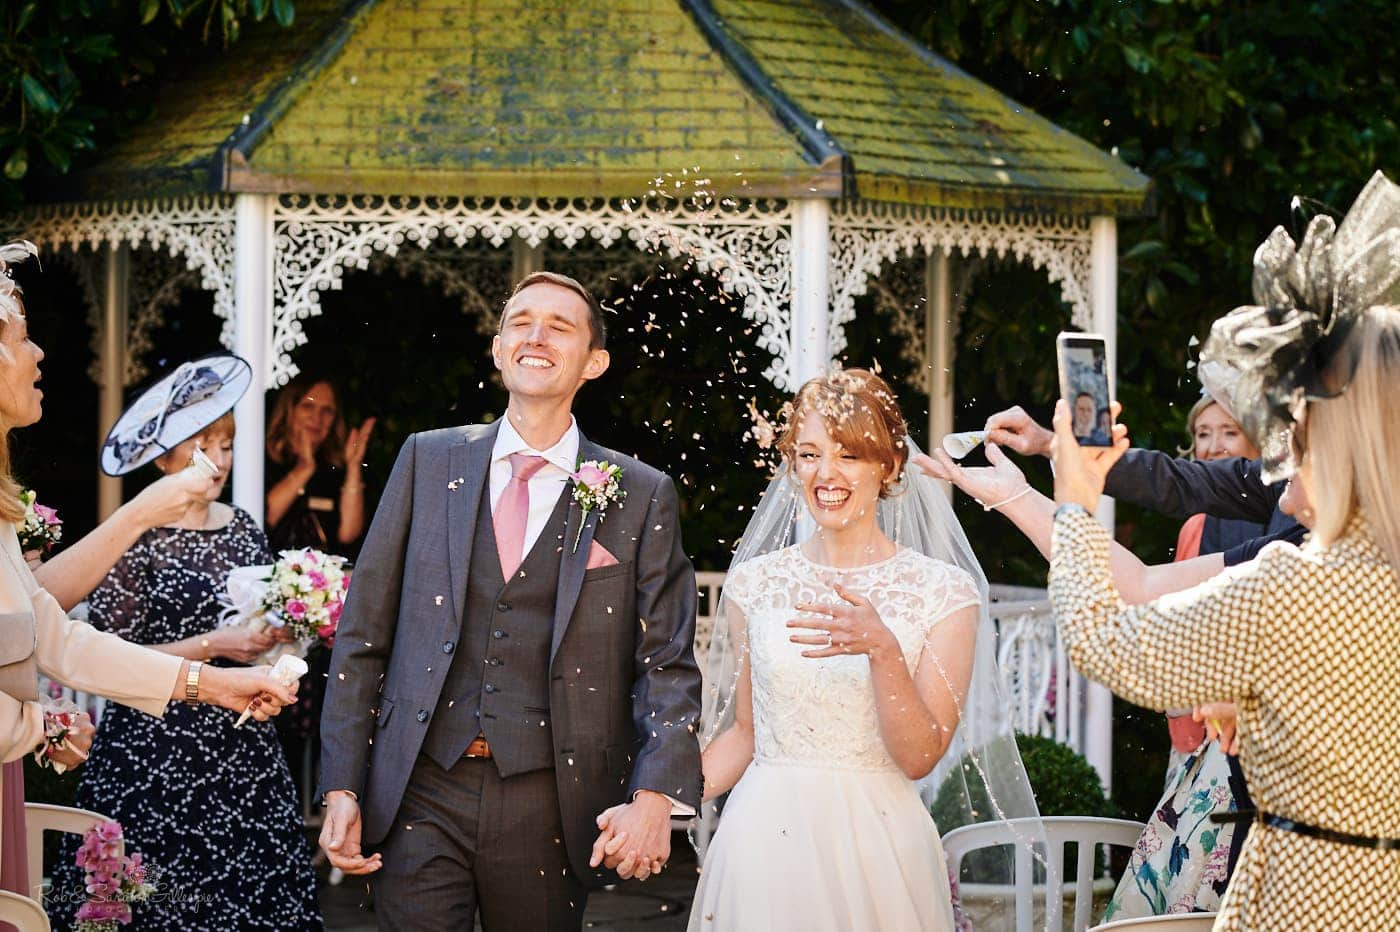 Bride and groom walk through confetti after outdoor ceremony at Pendrell Hall